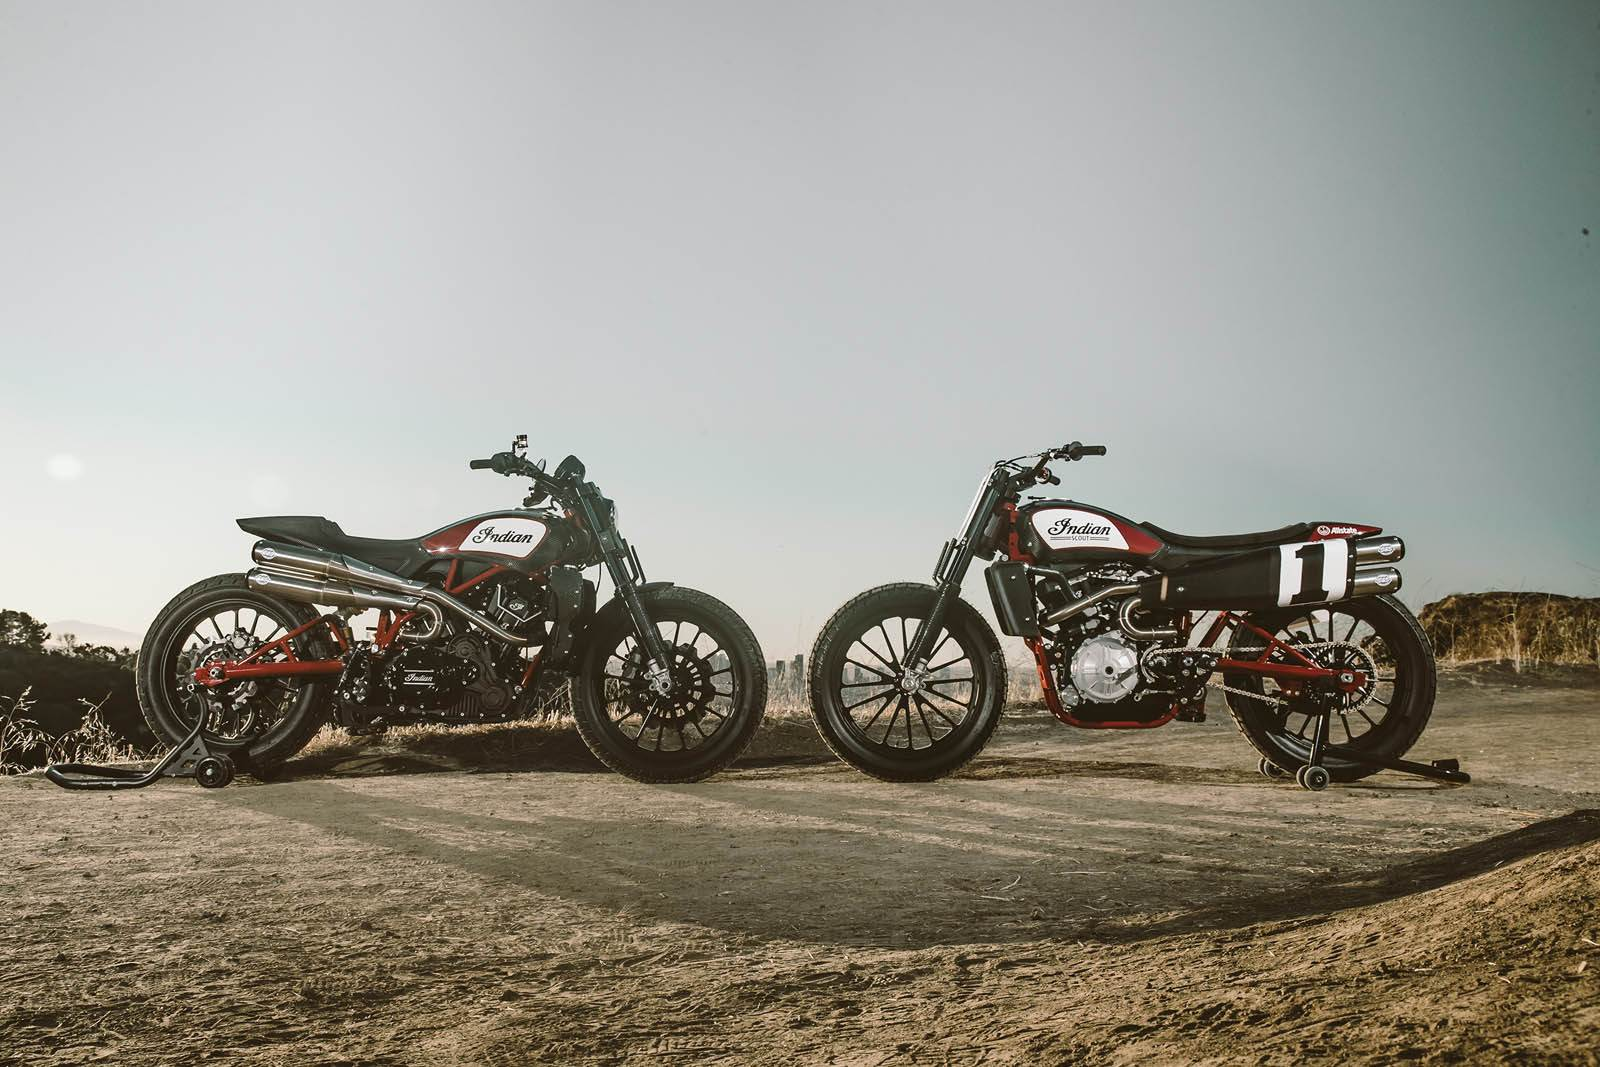 Indian Scout FTR1200 Custom image gallery